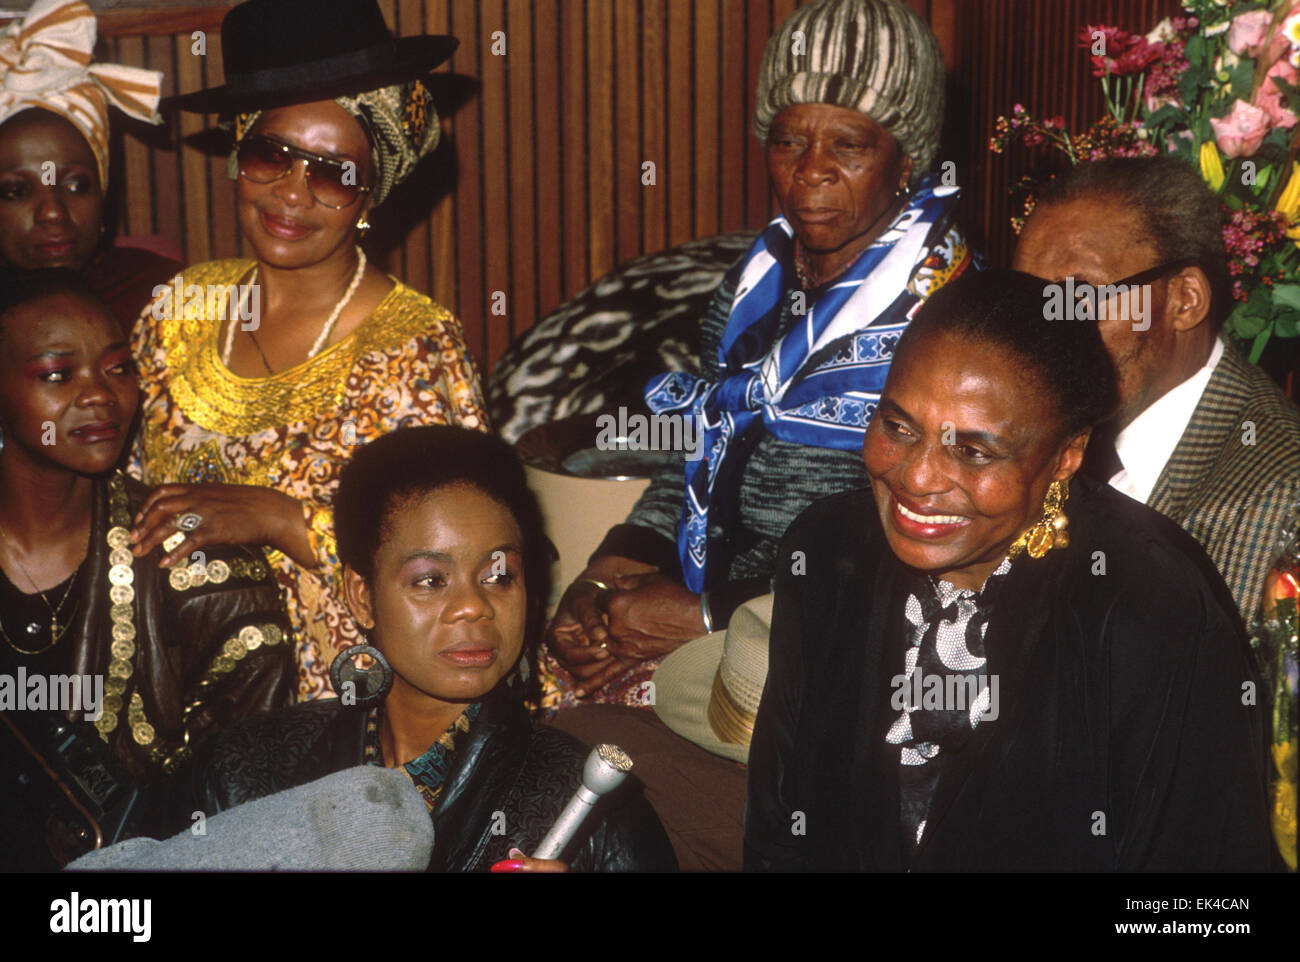 miriam makeba,the first lady of song famous South African